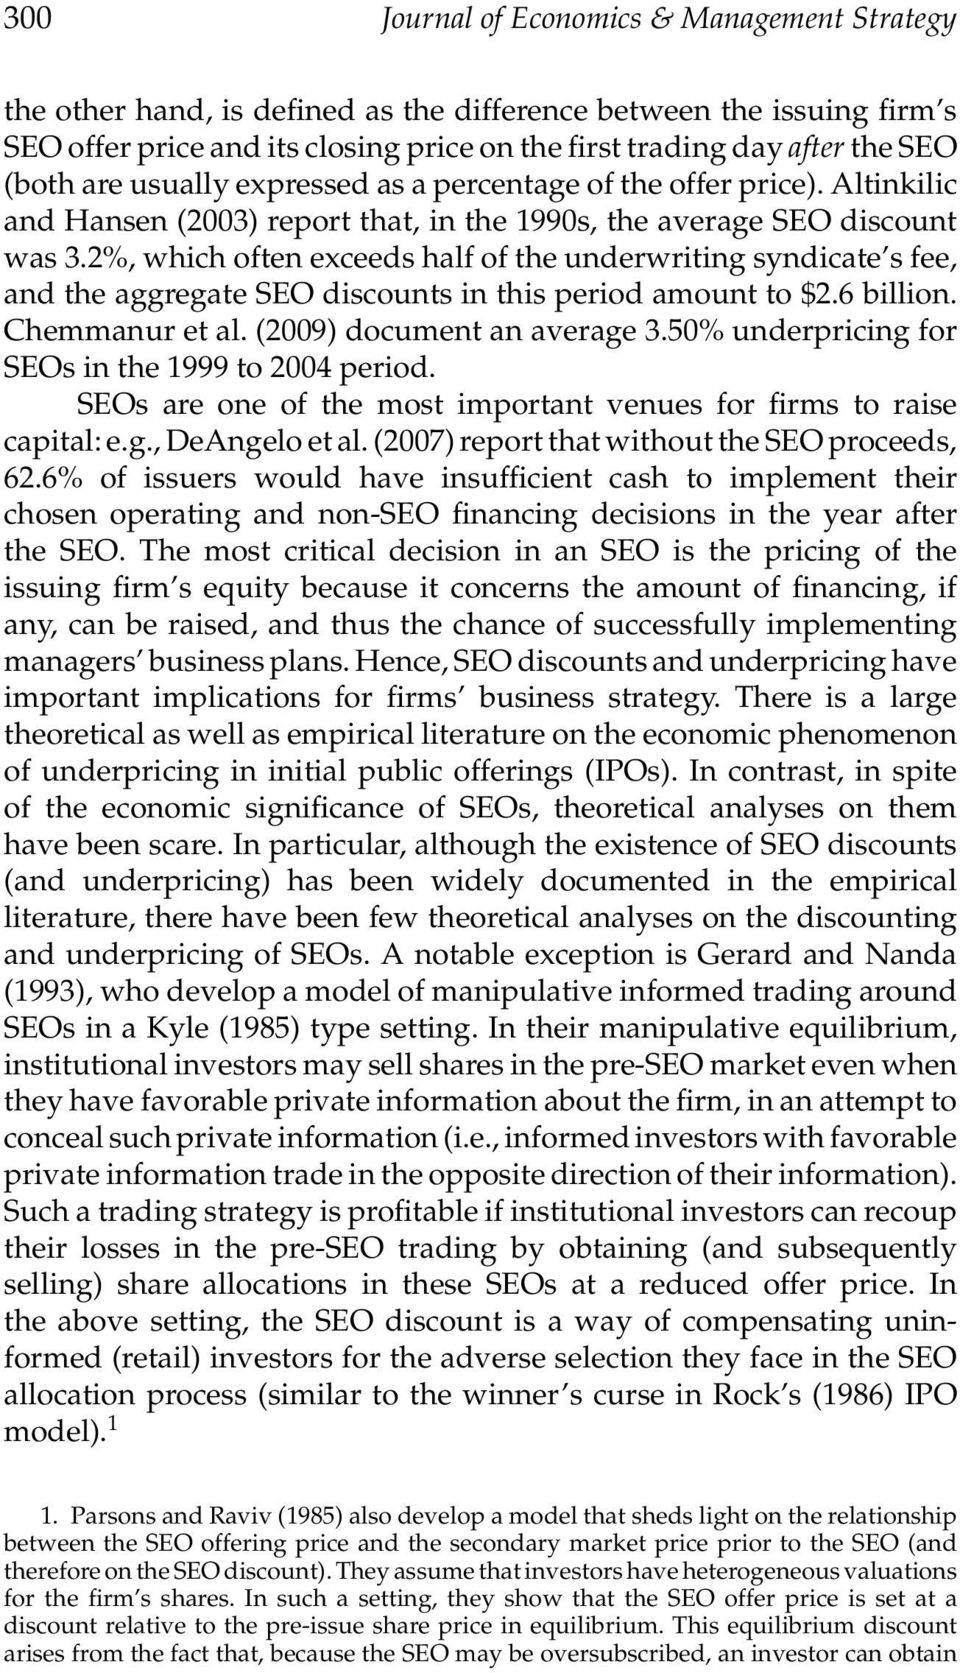 2%, which often exceeds half of the underwriting syndicate s fee, and the aggregate SEO discounts in this period amount to $2.6 billion. Chemmanur et al. (2009) document an average 3.